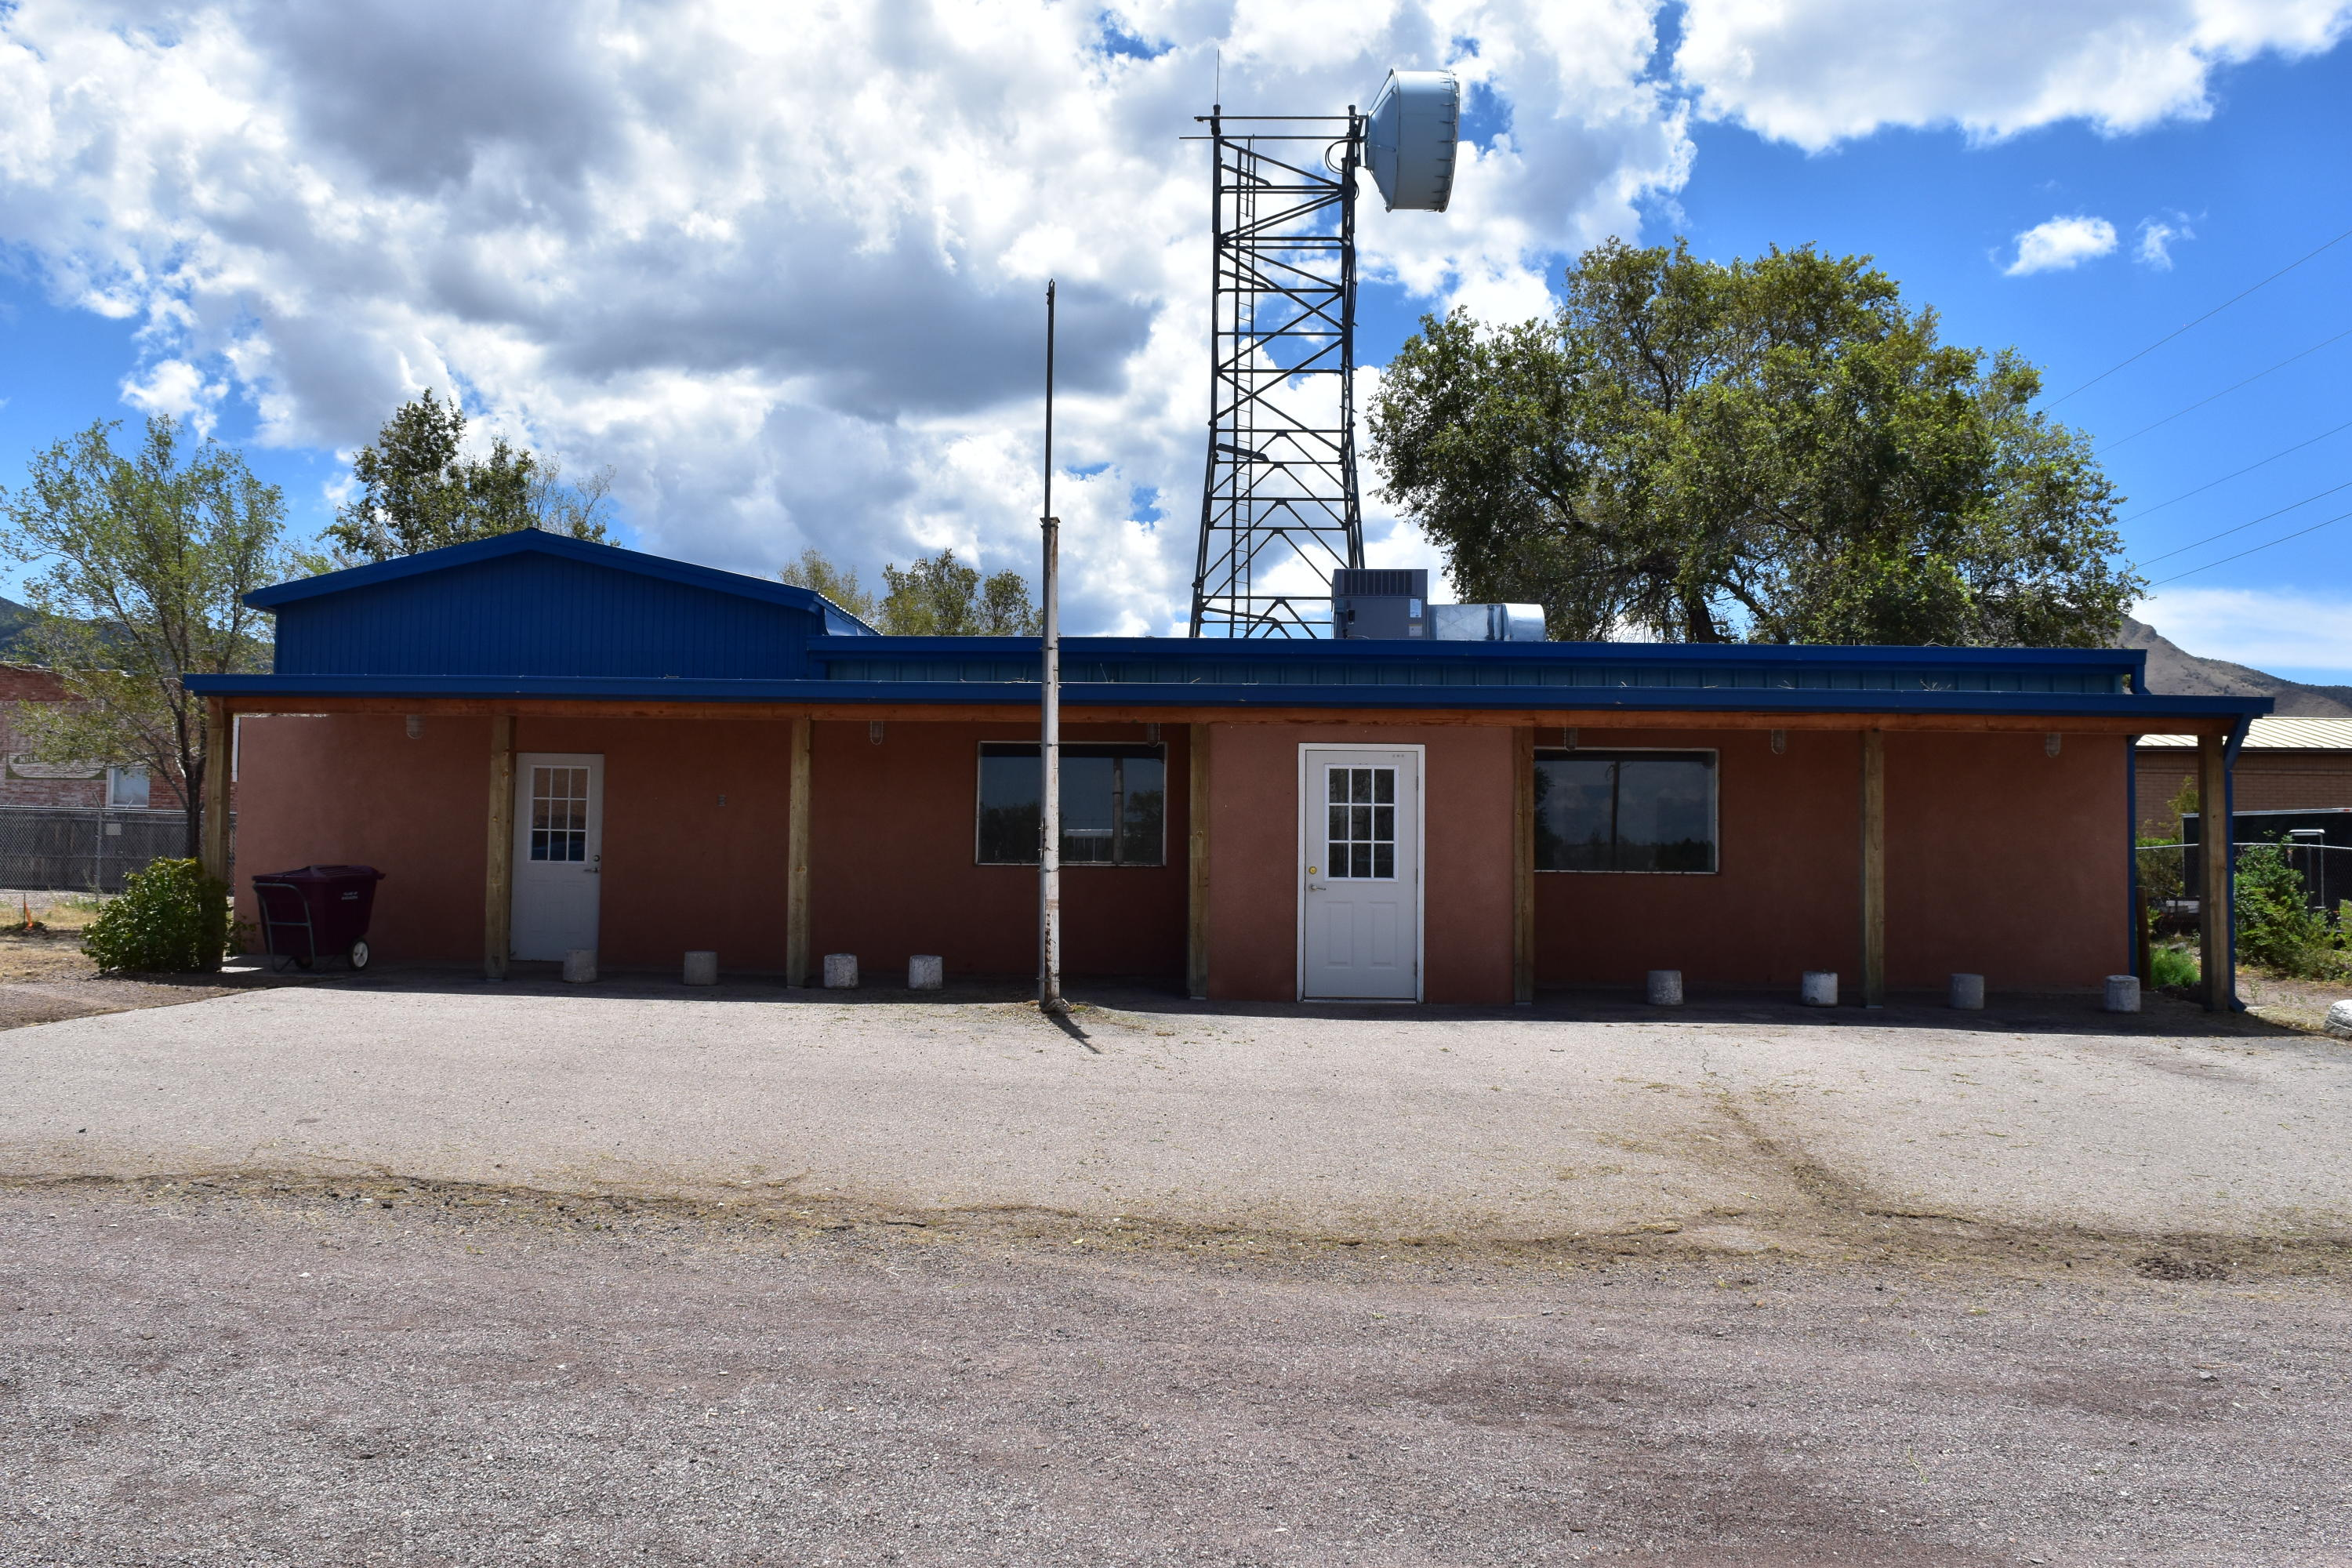 603 First Street, Magdalena, NM 87825 - Magdalena, NM real estate listing